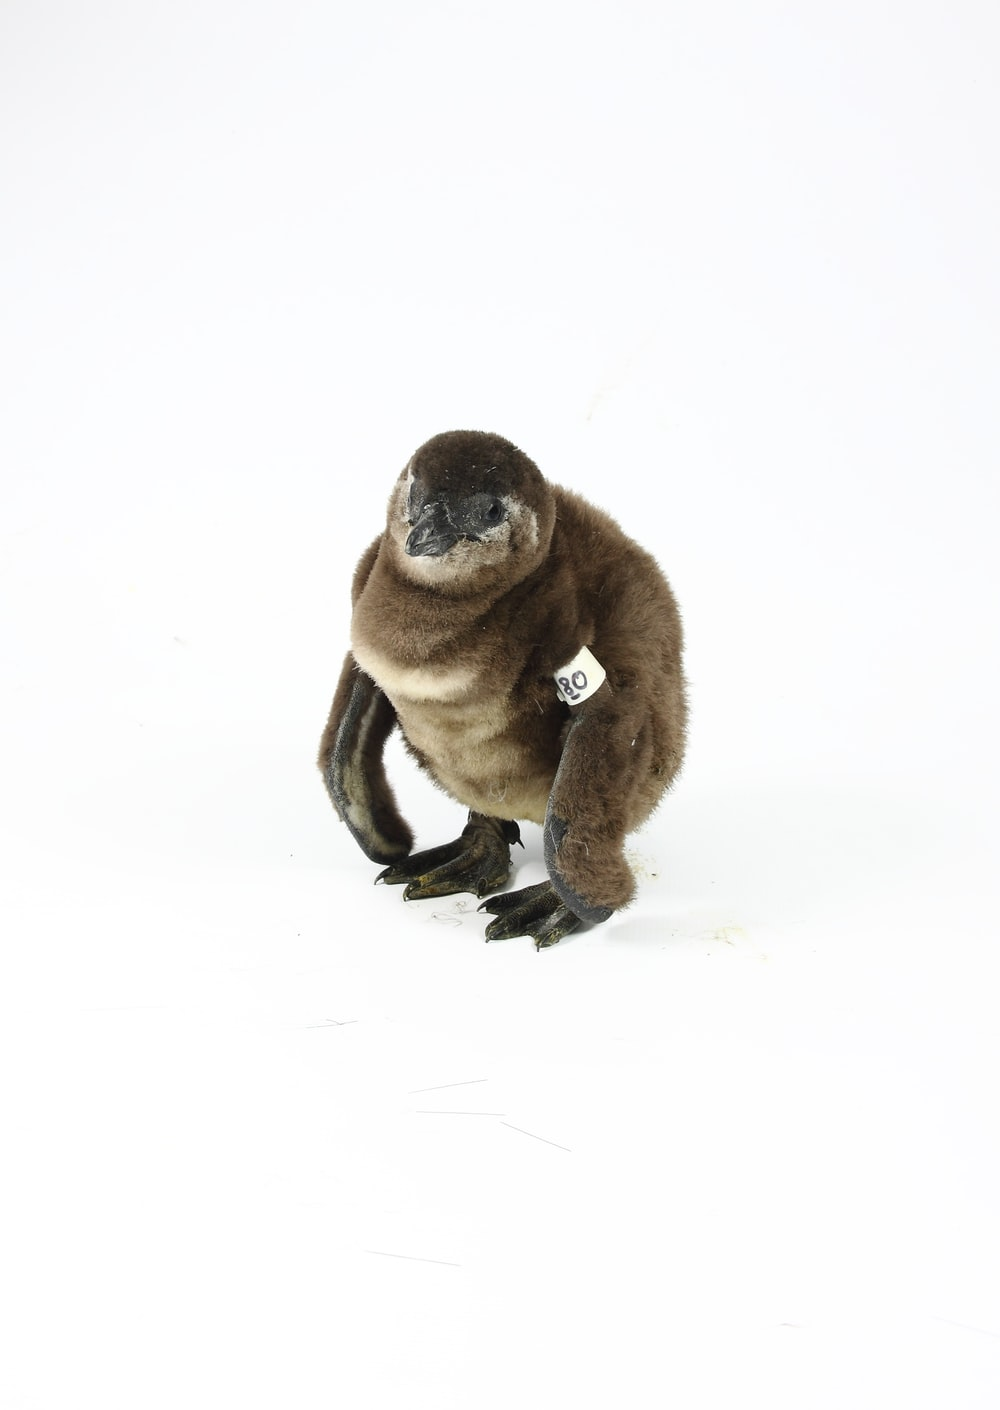 brown monkey sitting on snow covered ground